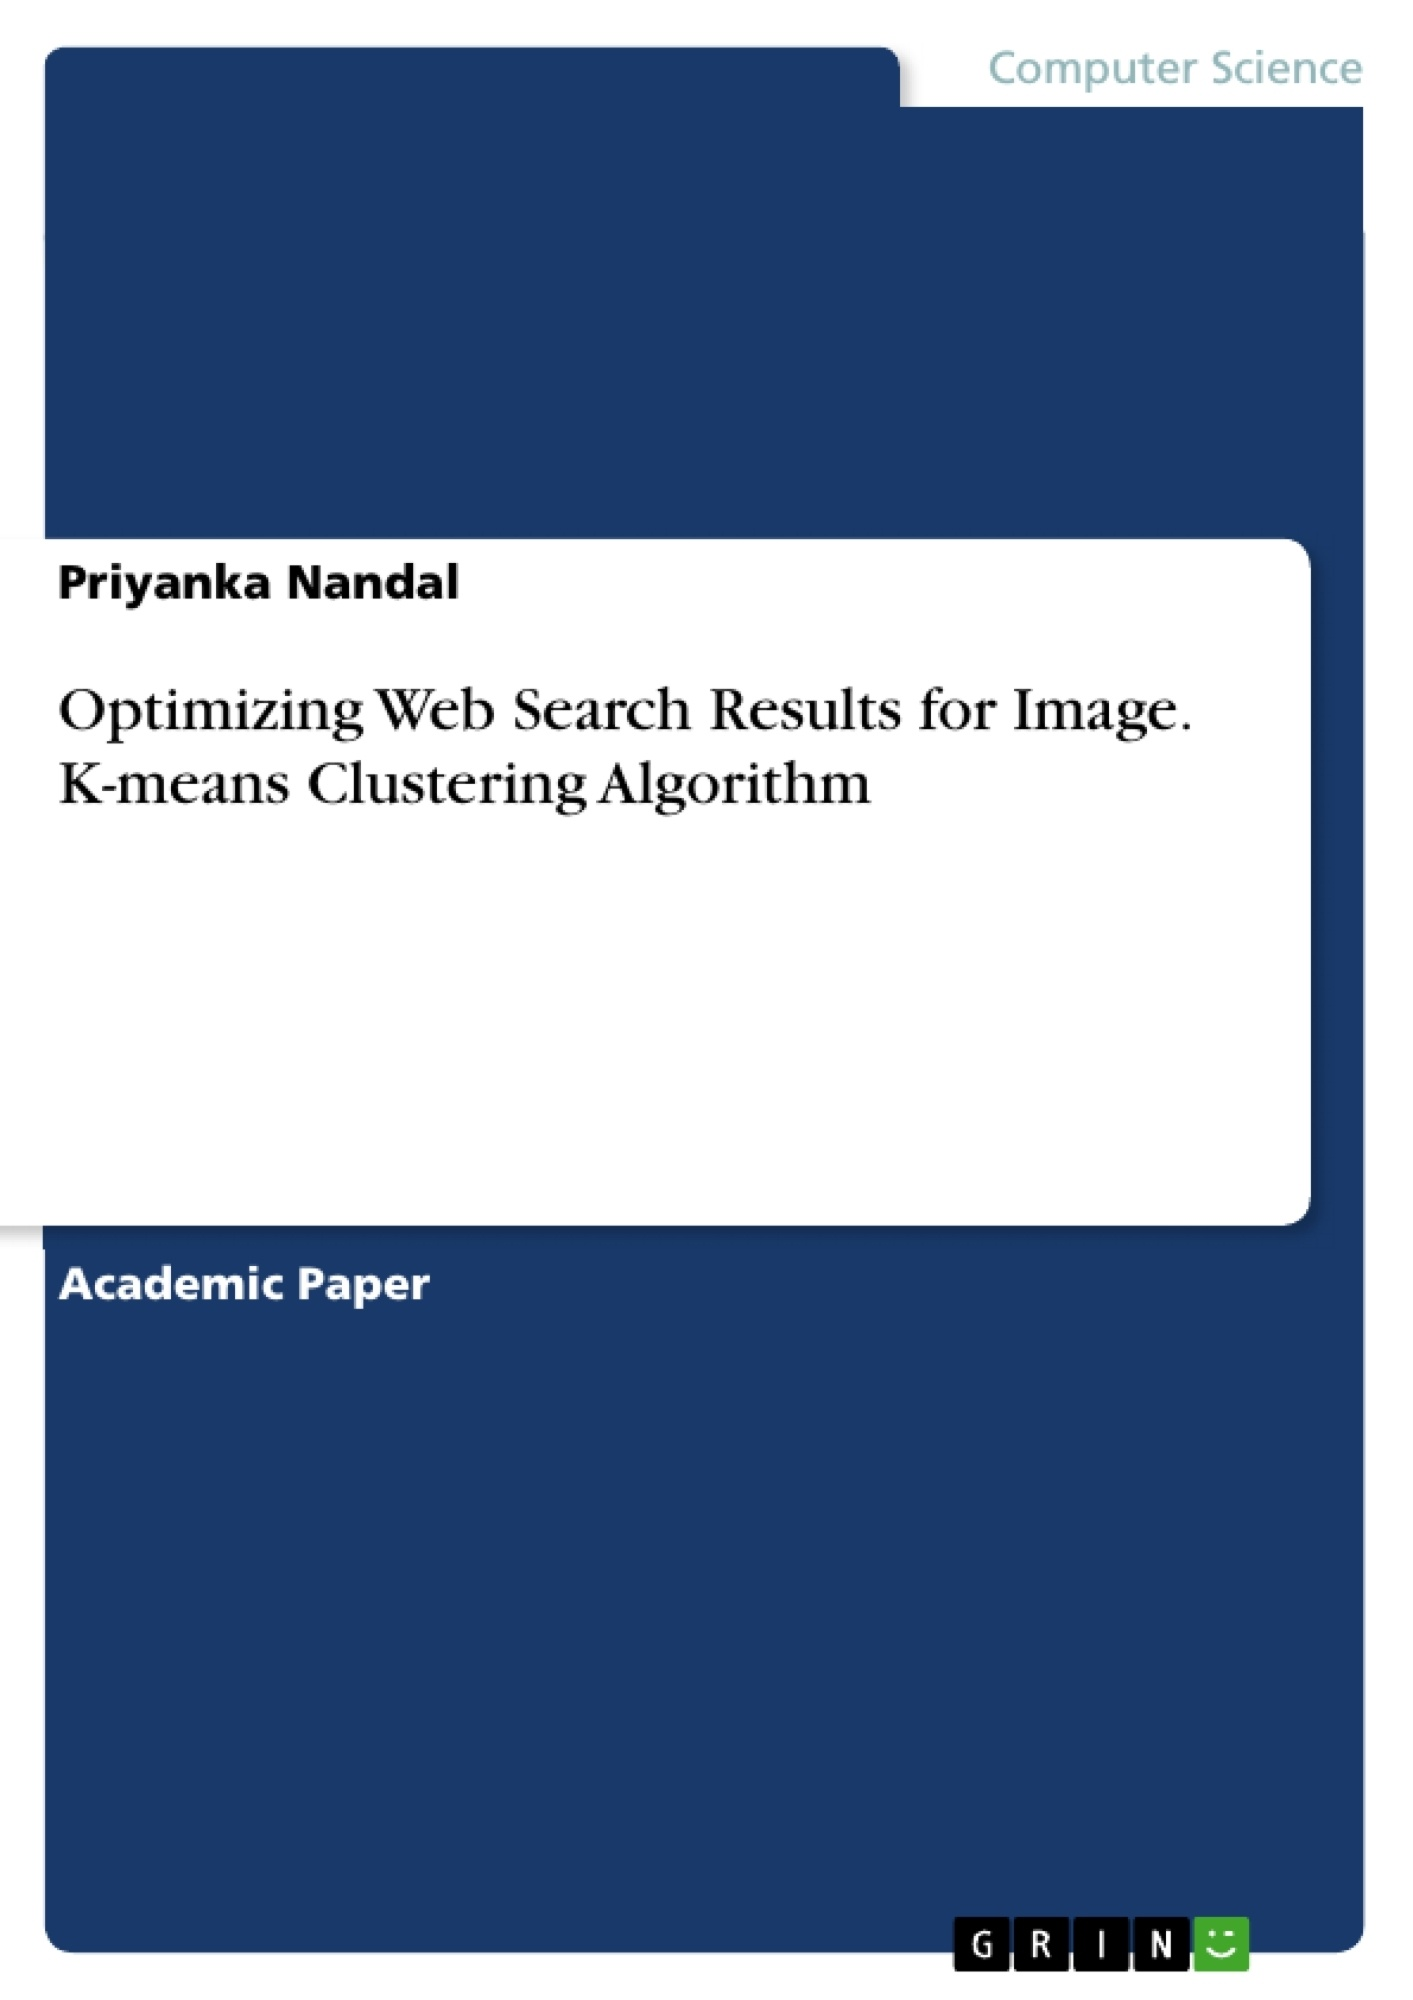 Title: Optimizing Web Search Results for Image. K-means Clustering Algorithm